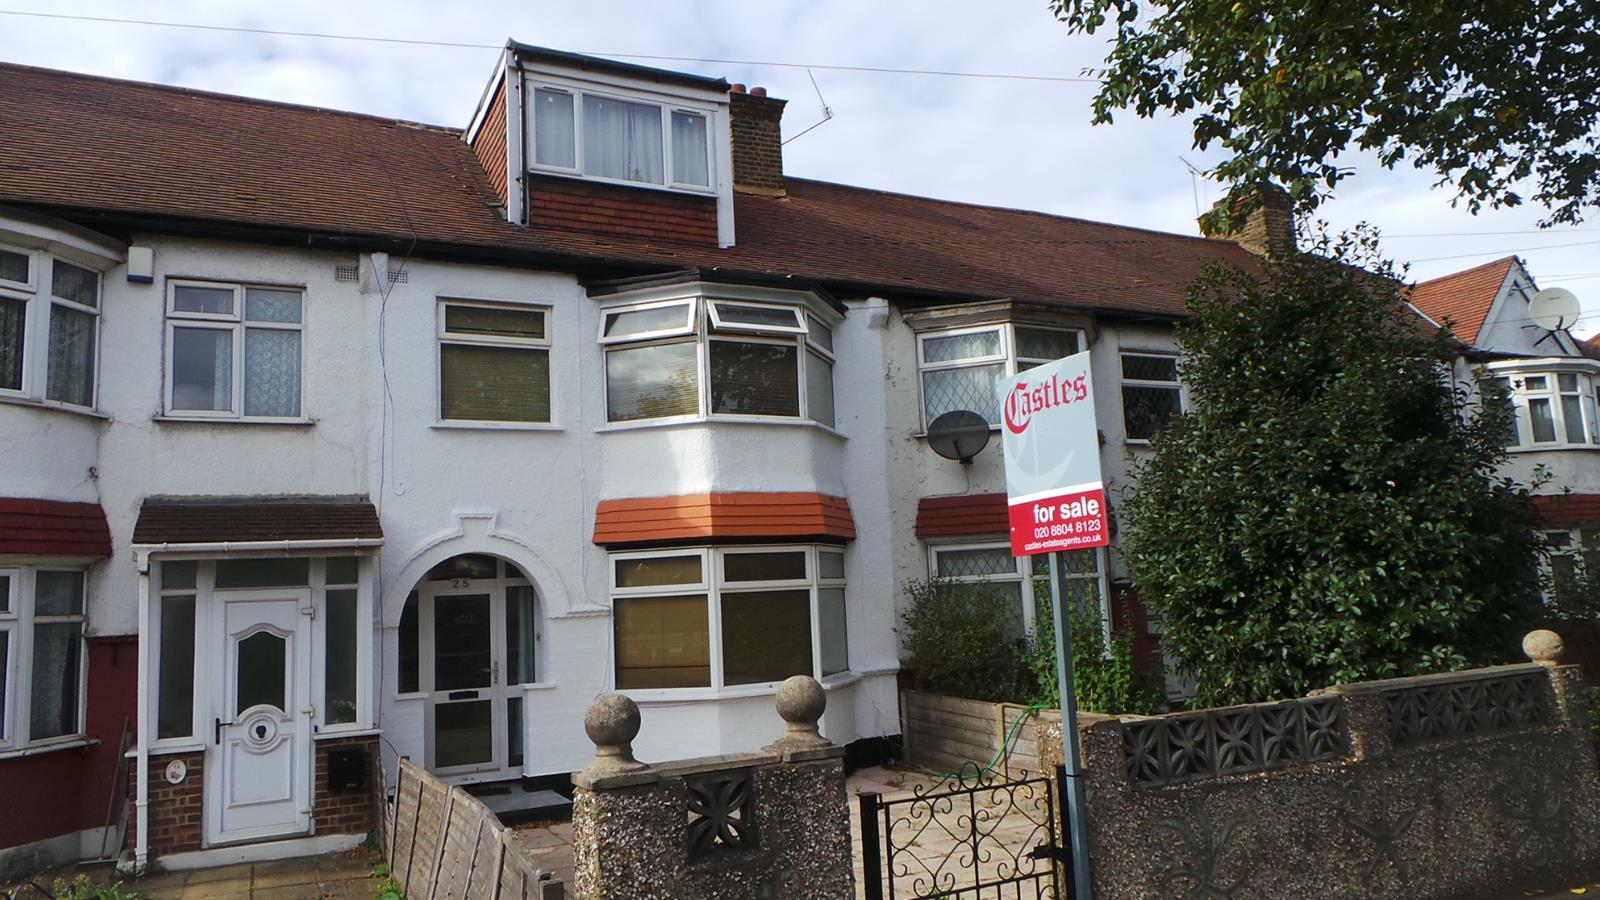 5 Bedrooms Terraced House for sale in Great Cambridge Road, Enfield, EN1